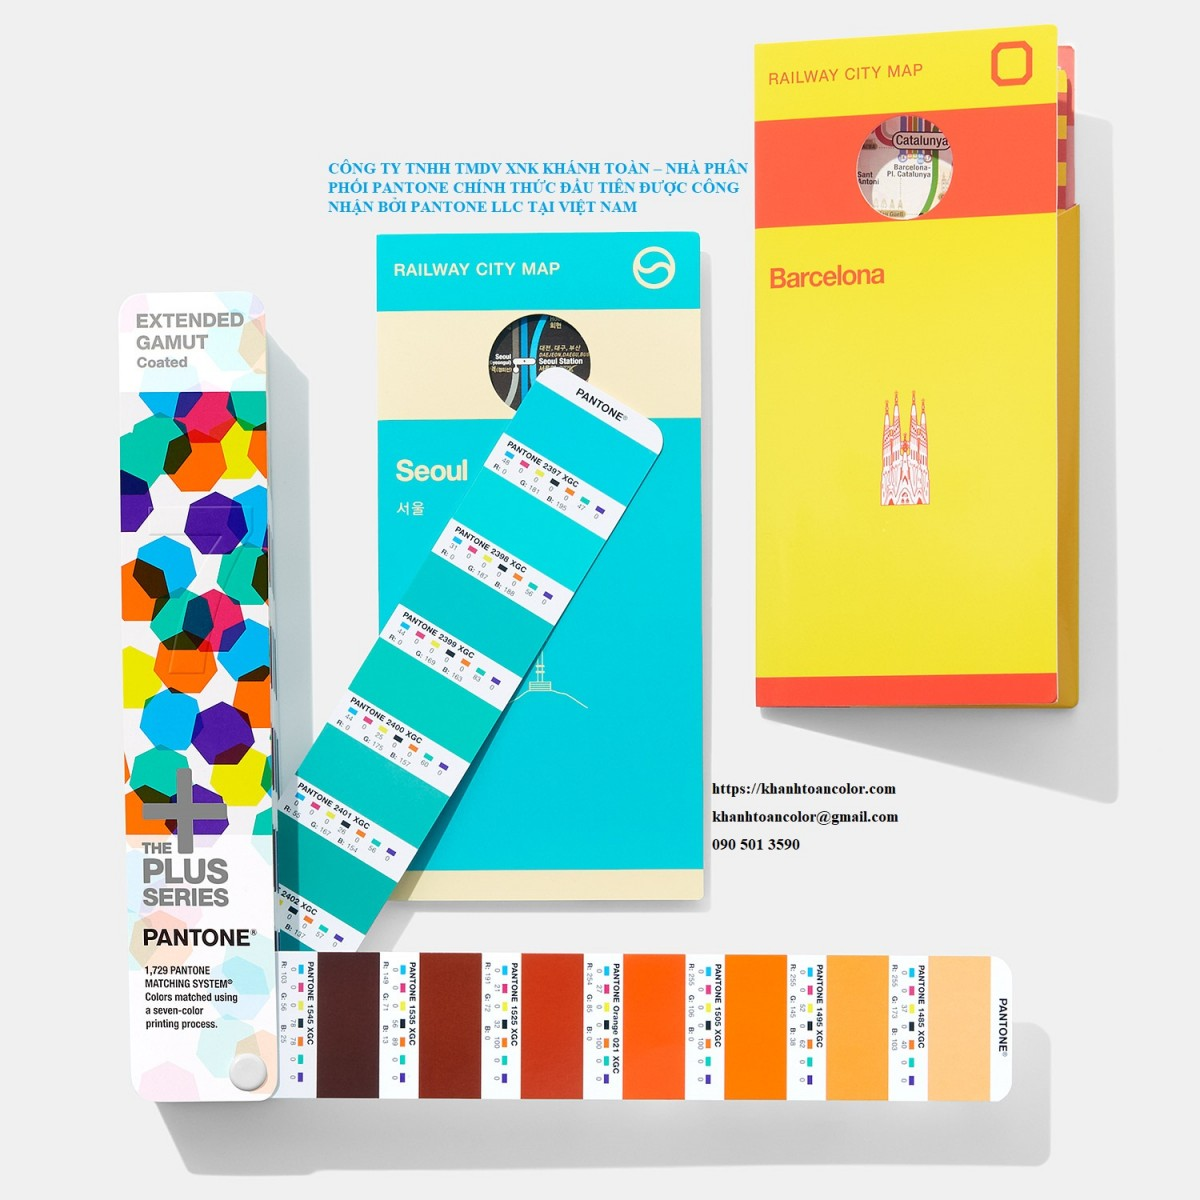 bang mau pantone GG7000-pantone-extended-gamut-coated-guide-pms-7-color-process-product-2